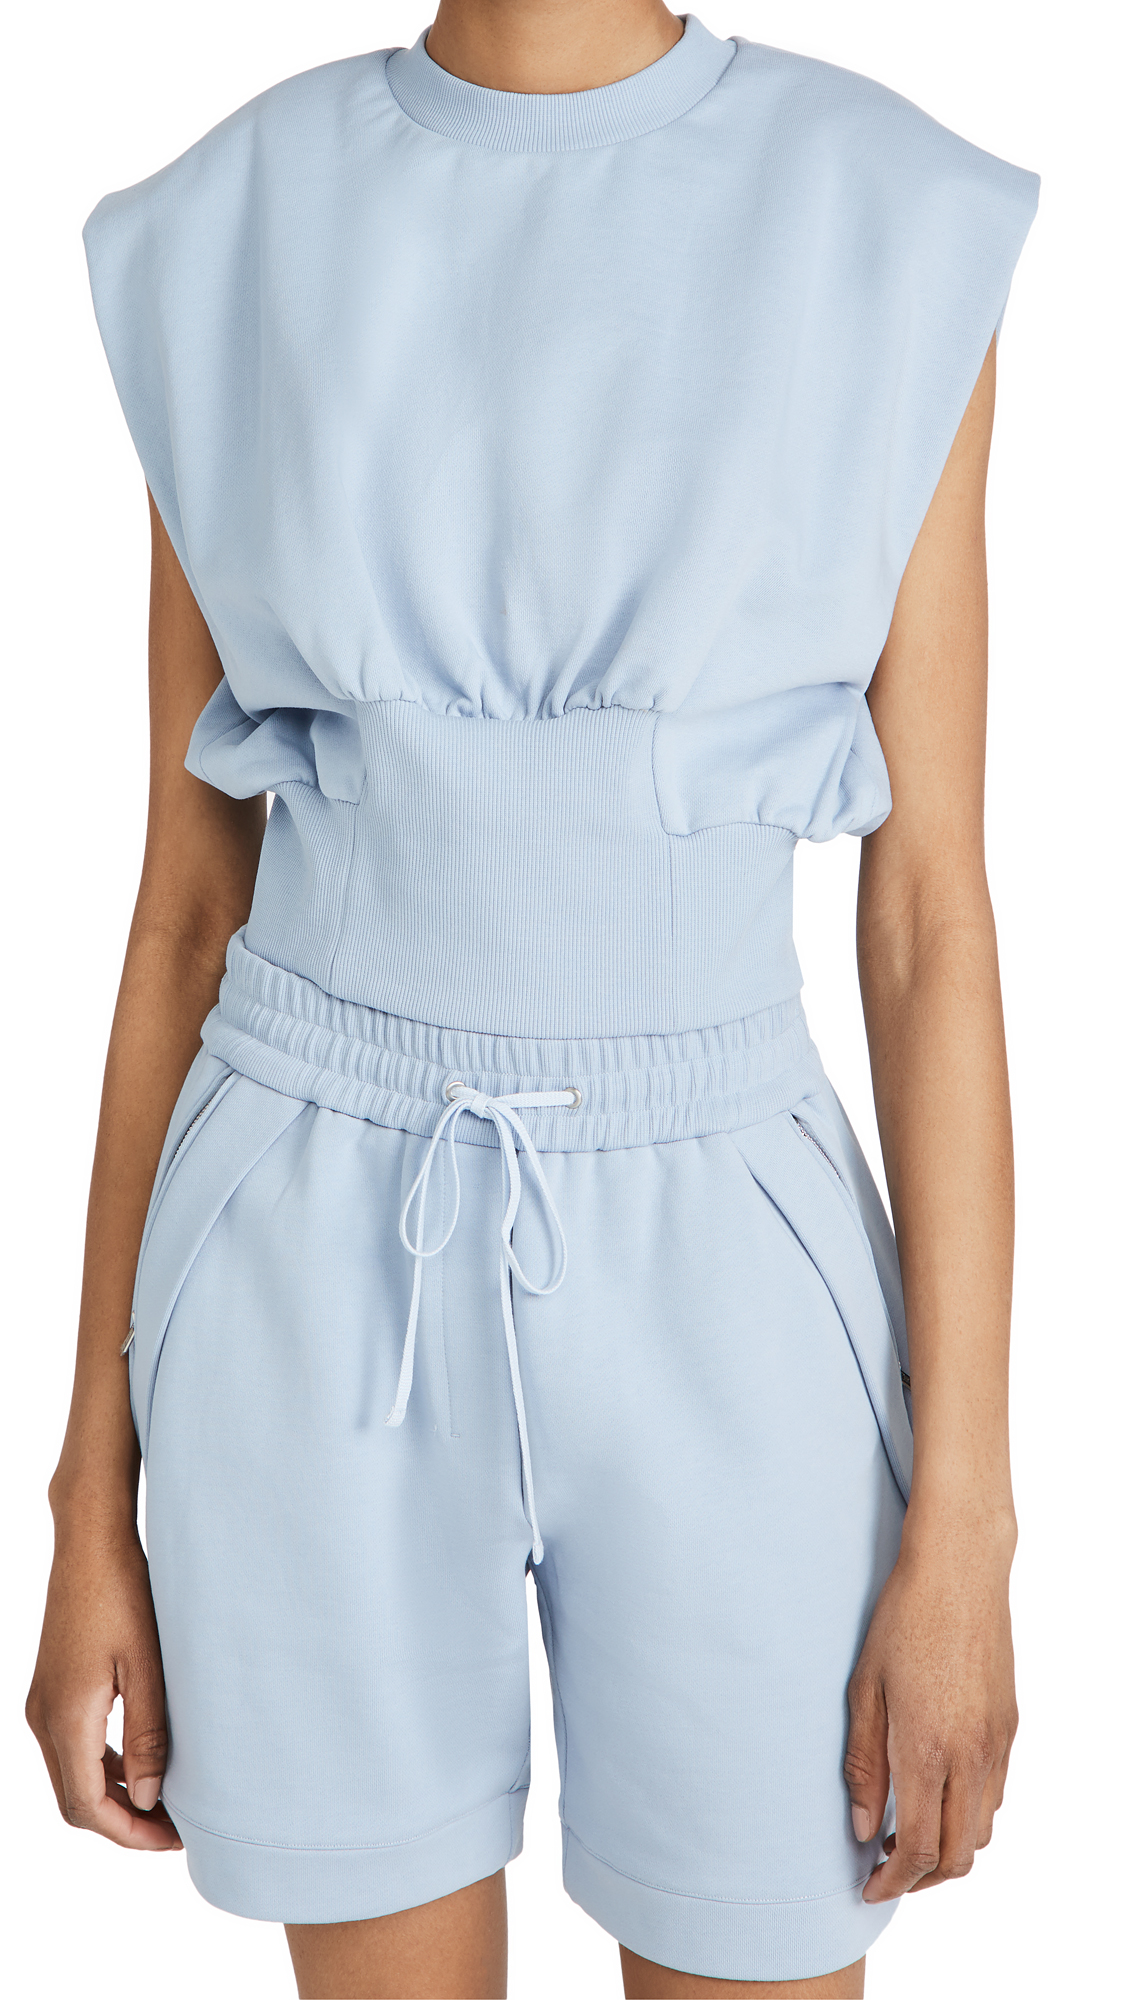 3.1 Phillip Lim Cottons SLEEVELESS FRENCH TERRY TOP